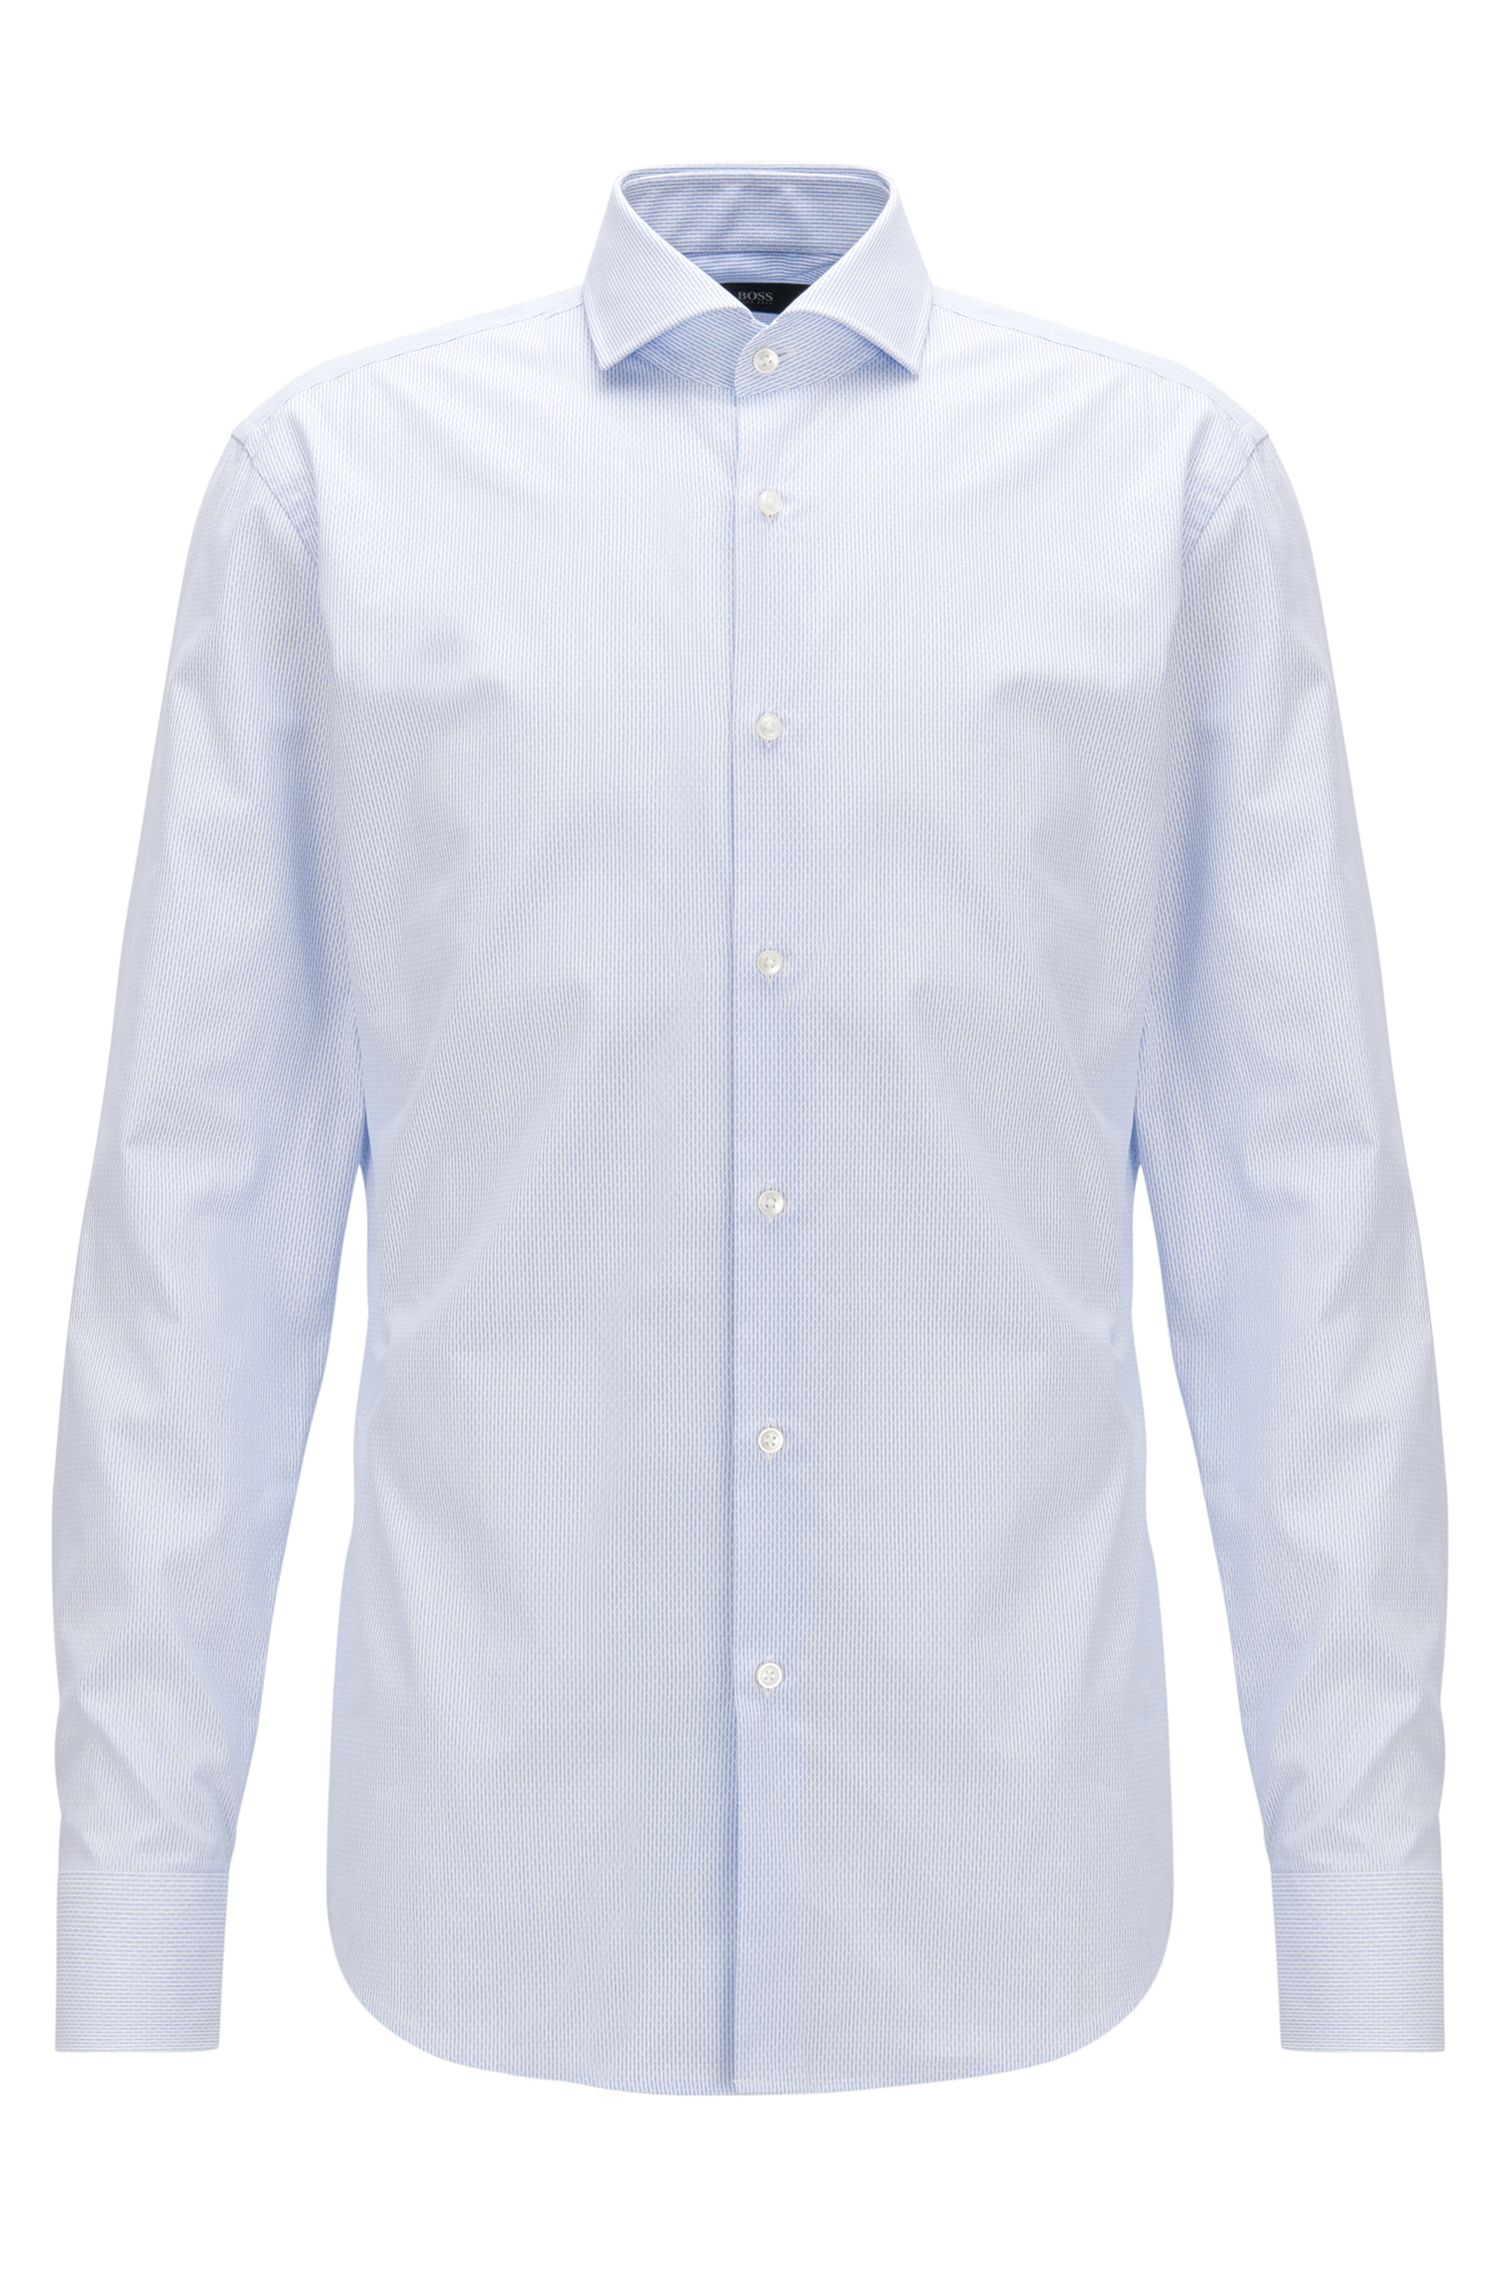 Textured Dobby Cotton Dress Shirt, Slim Fit | Jason